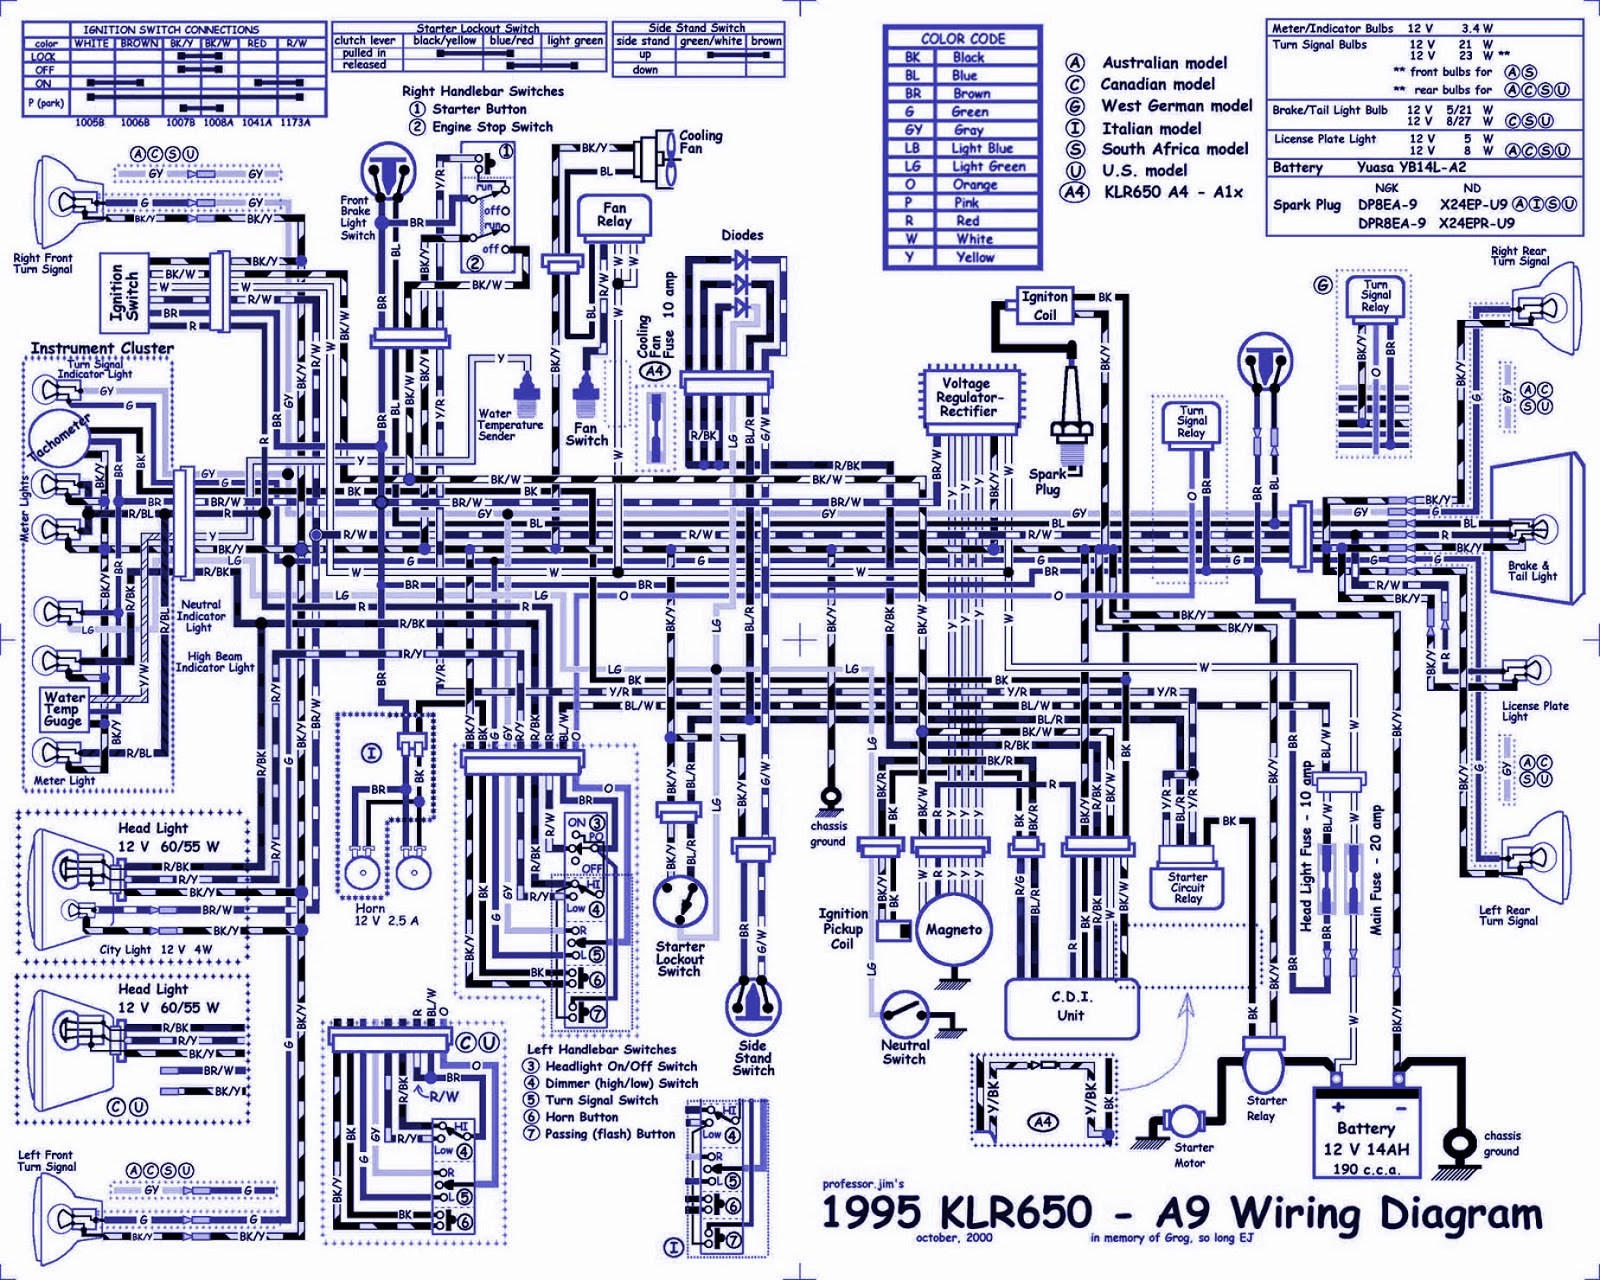 Monte Carlo 1974 Electrical Wiring Diagram Auto Diagrams